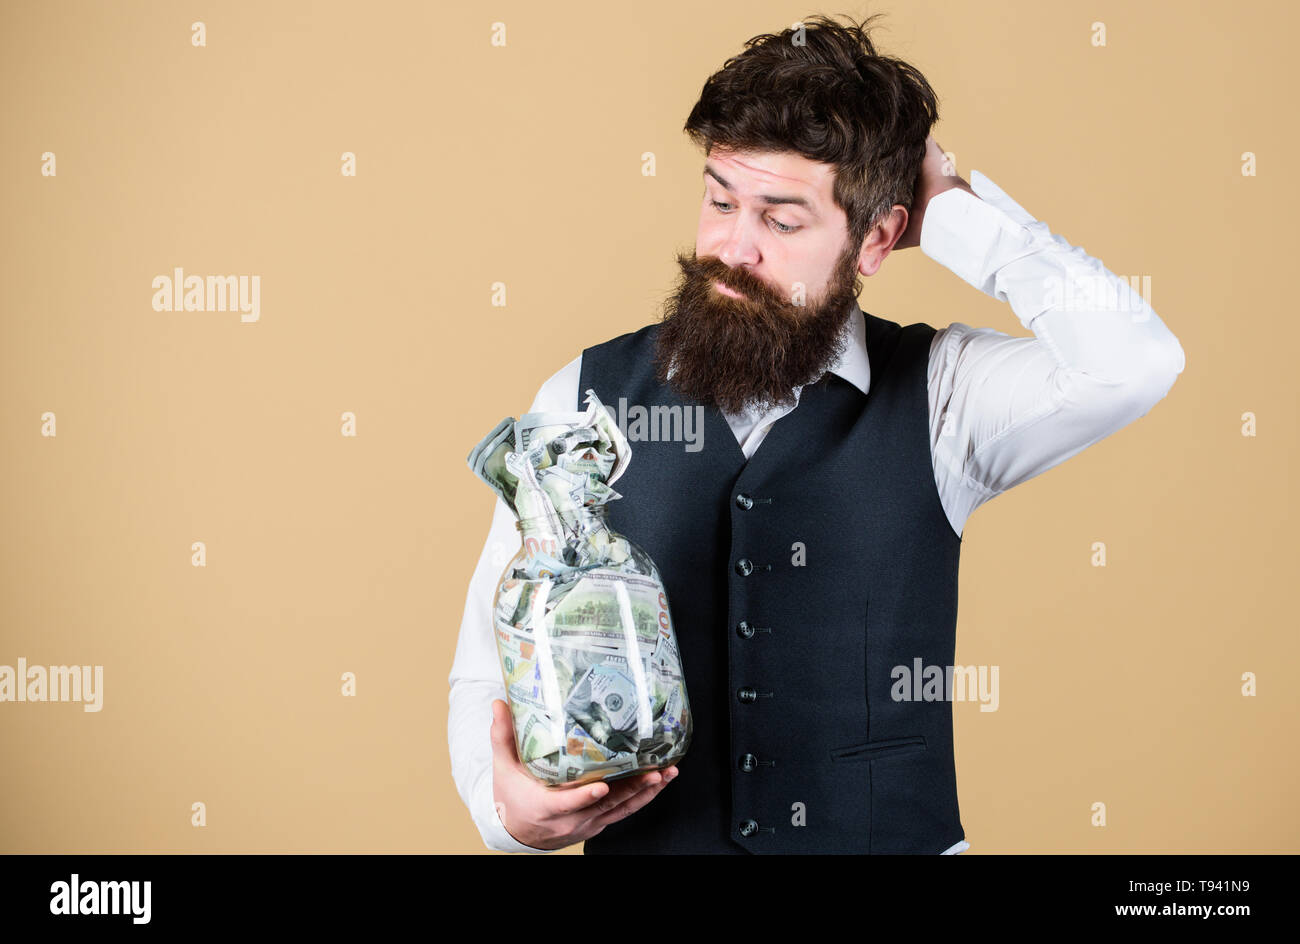 What is a good way of investing money. Bearded man thinking of investing money into business. Businessman calculating his future cash flow from investing activities. Investing in future, copy space. - Stock Image